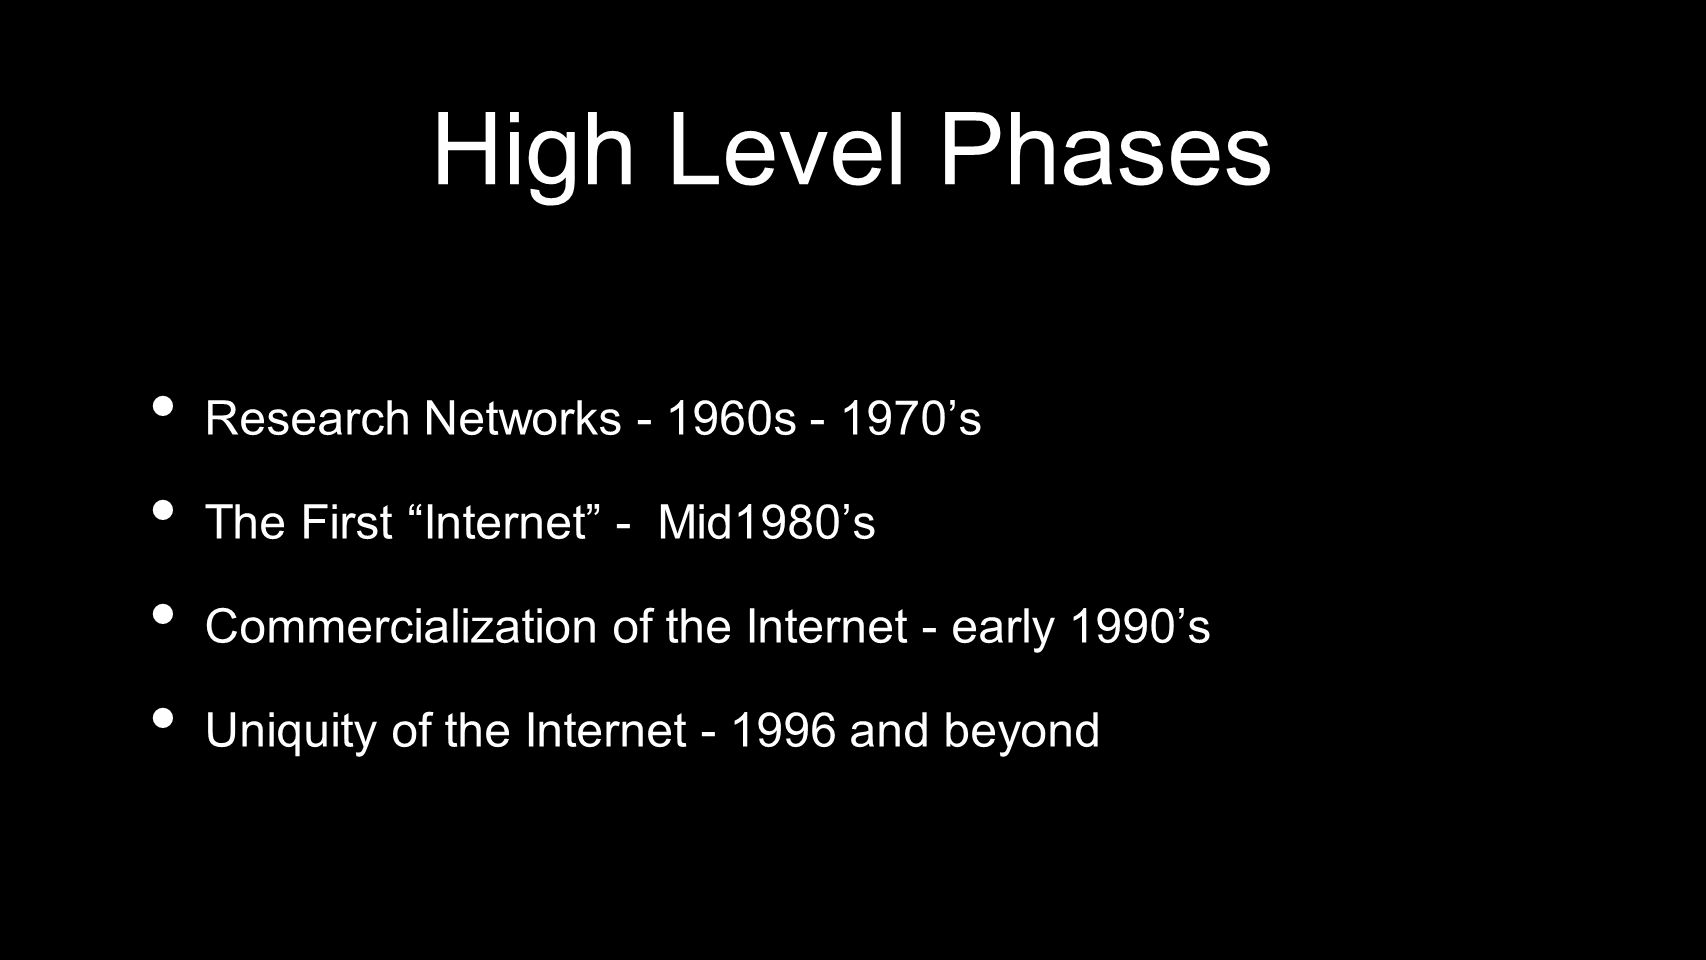 High Level Phases Research Networks - 1960s - 1970's